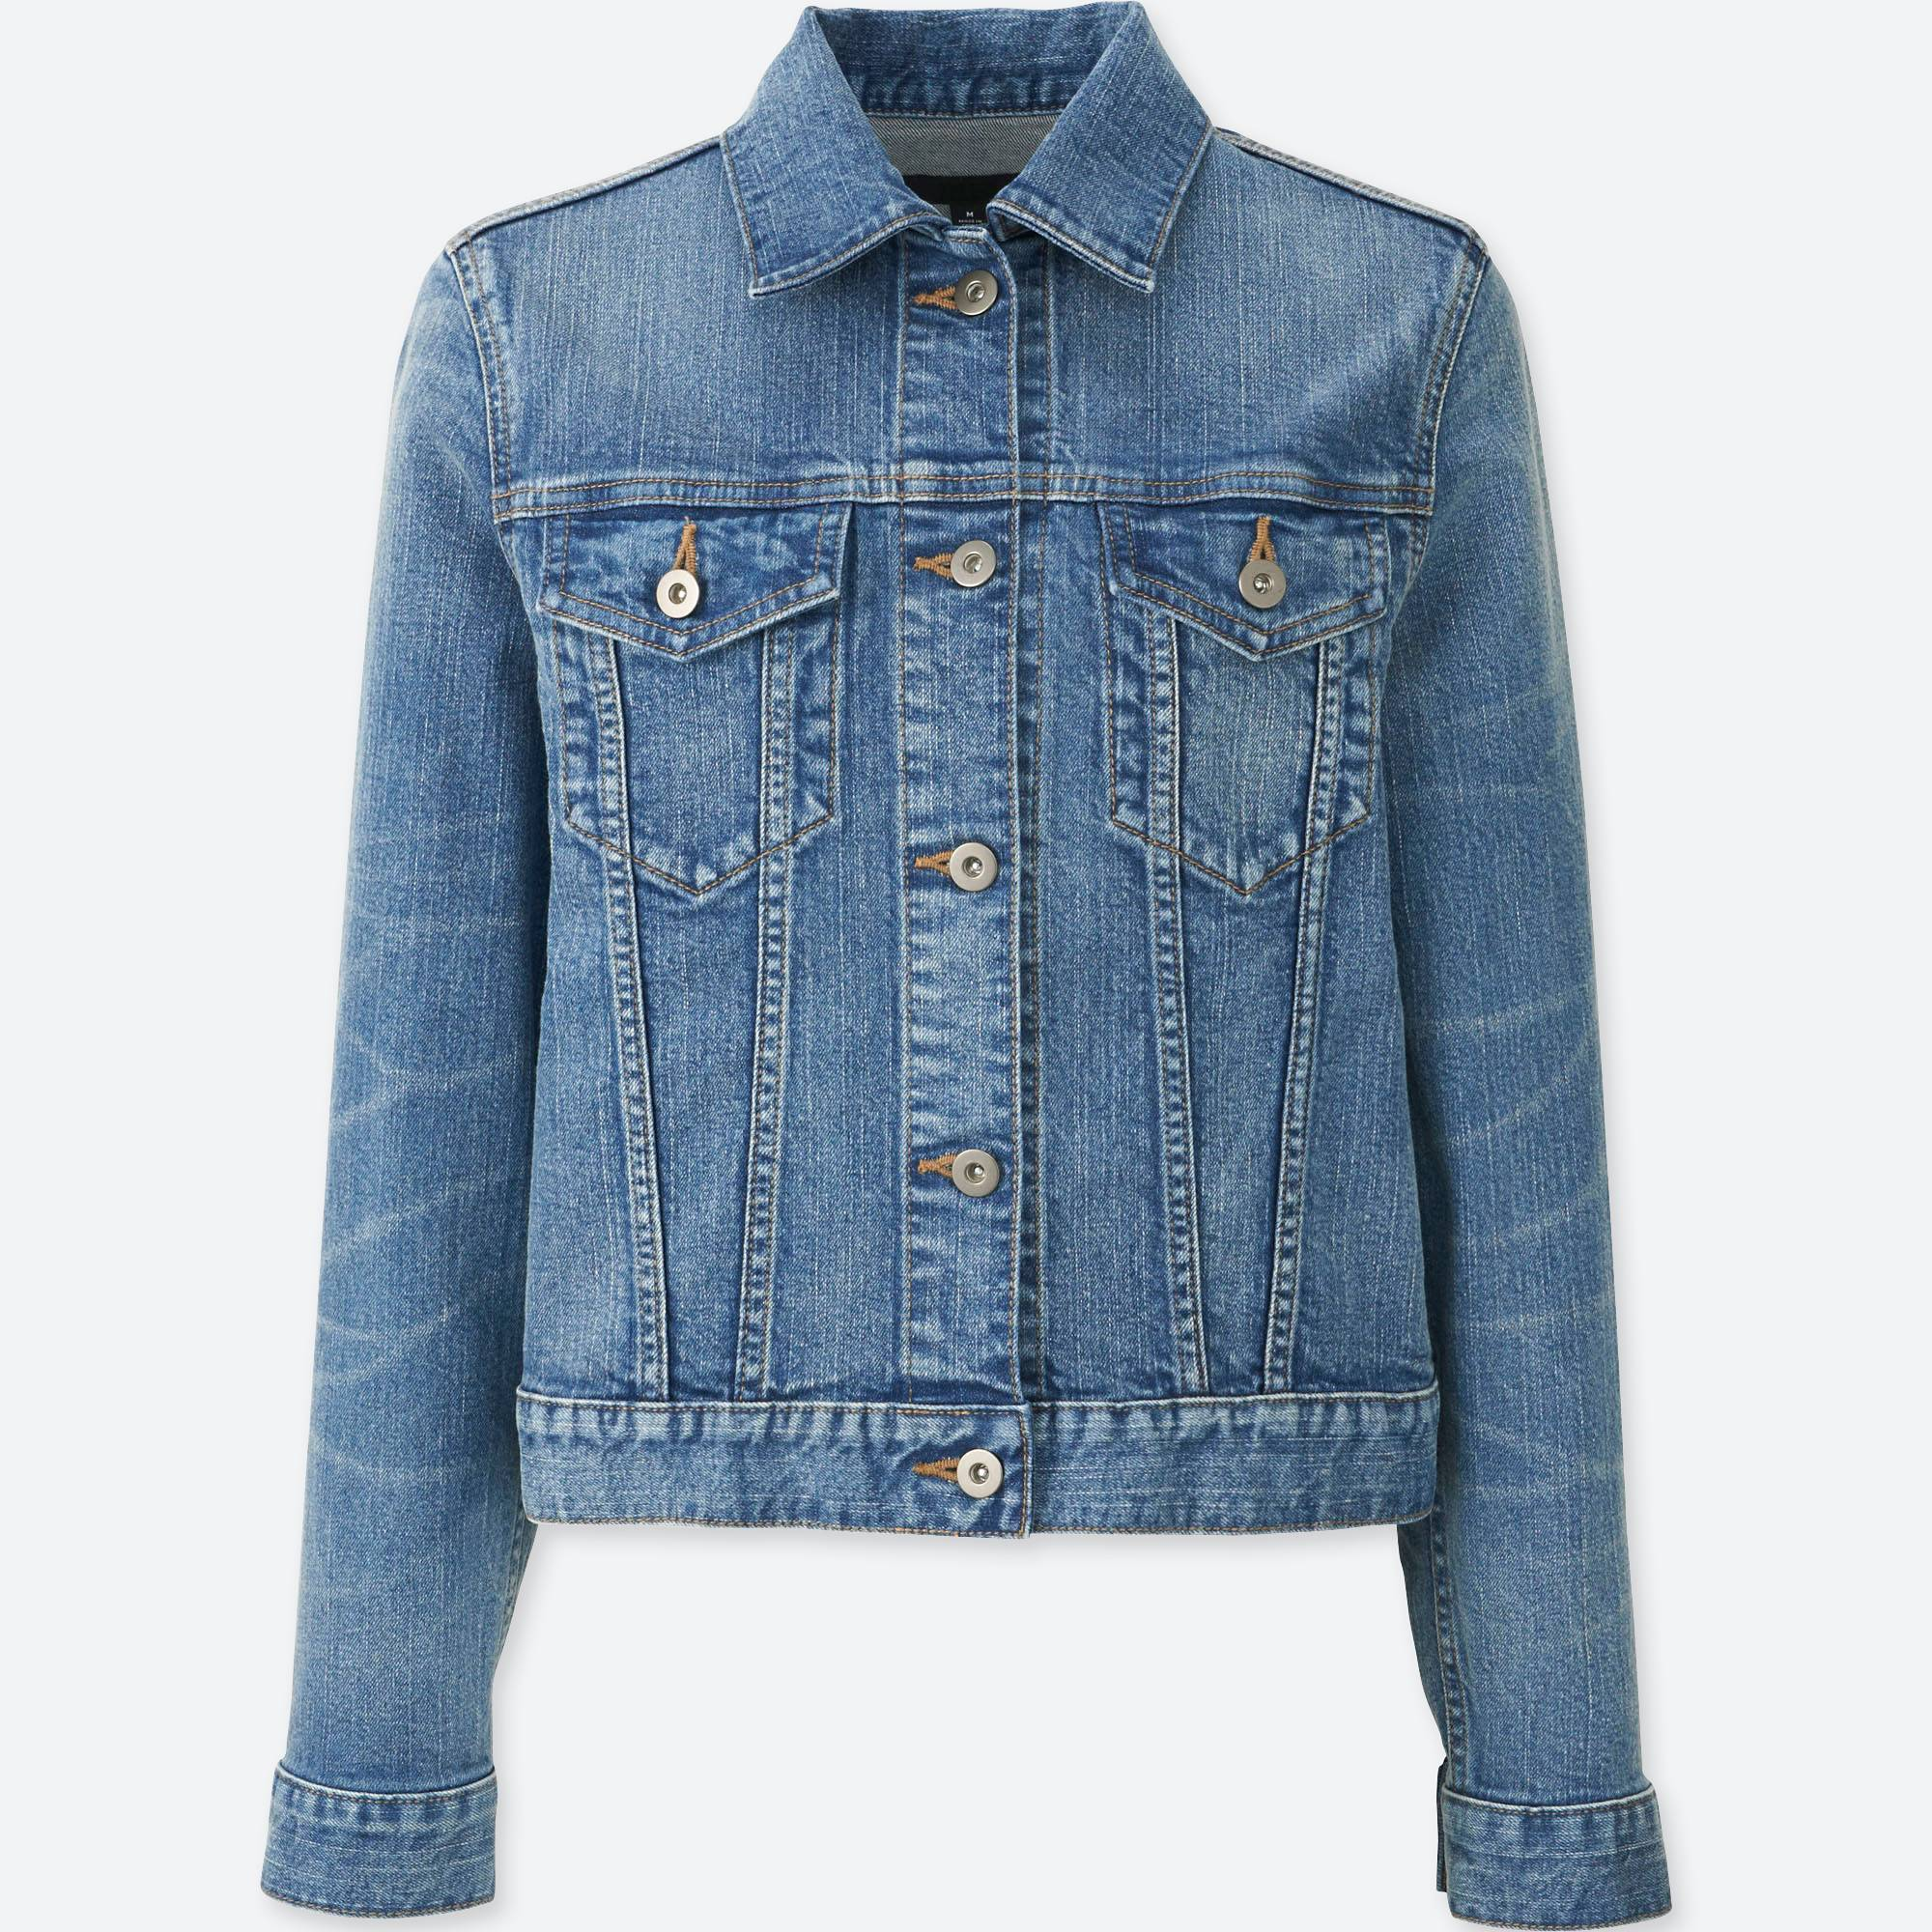 Female Denim Jacket | Outdoor Jacket